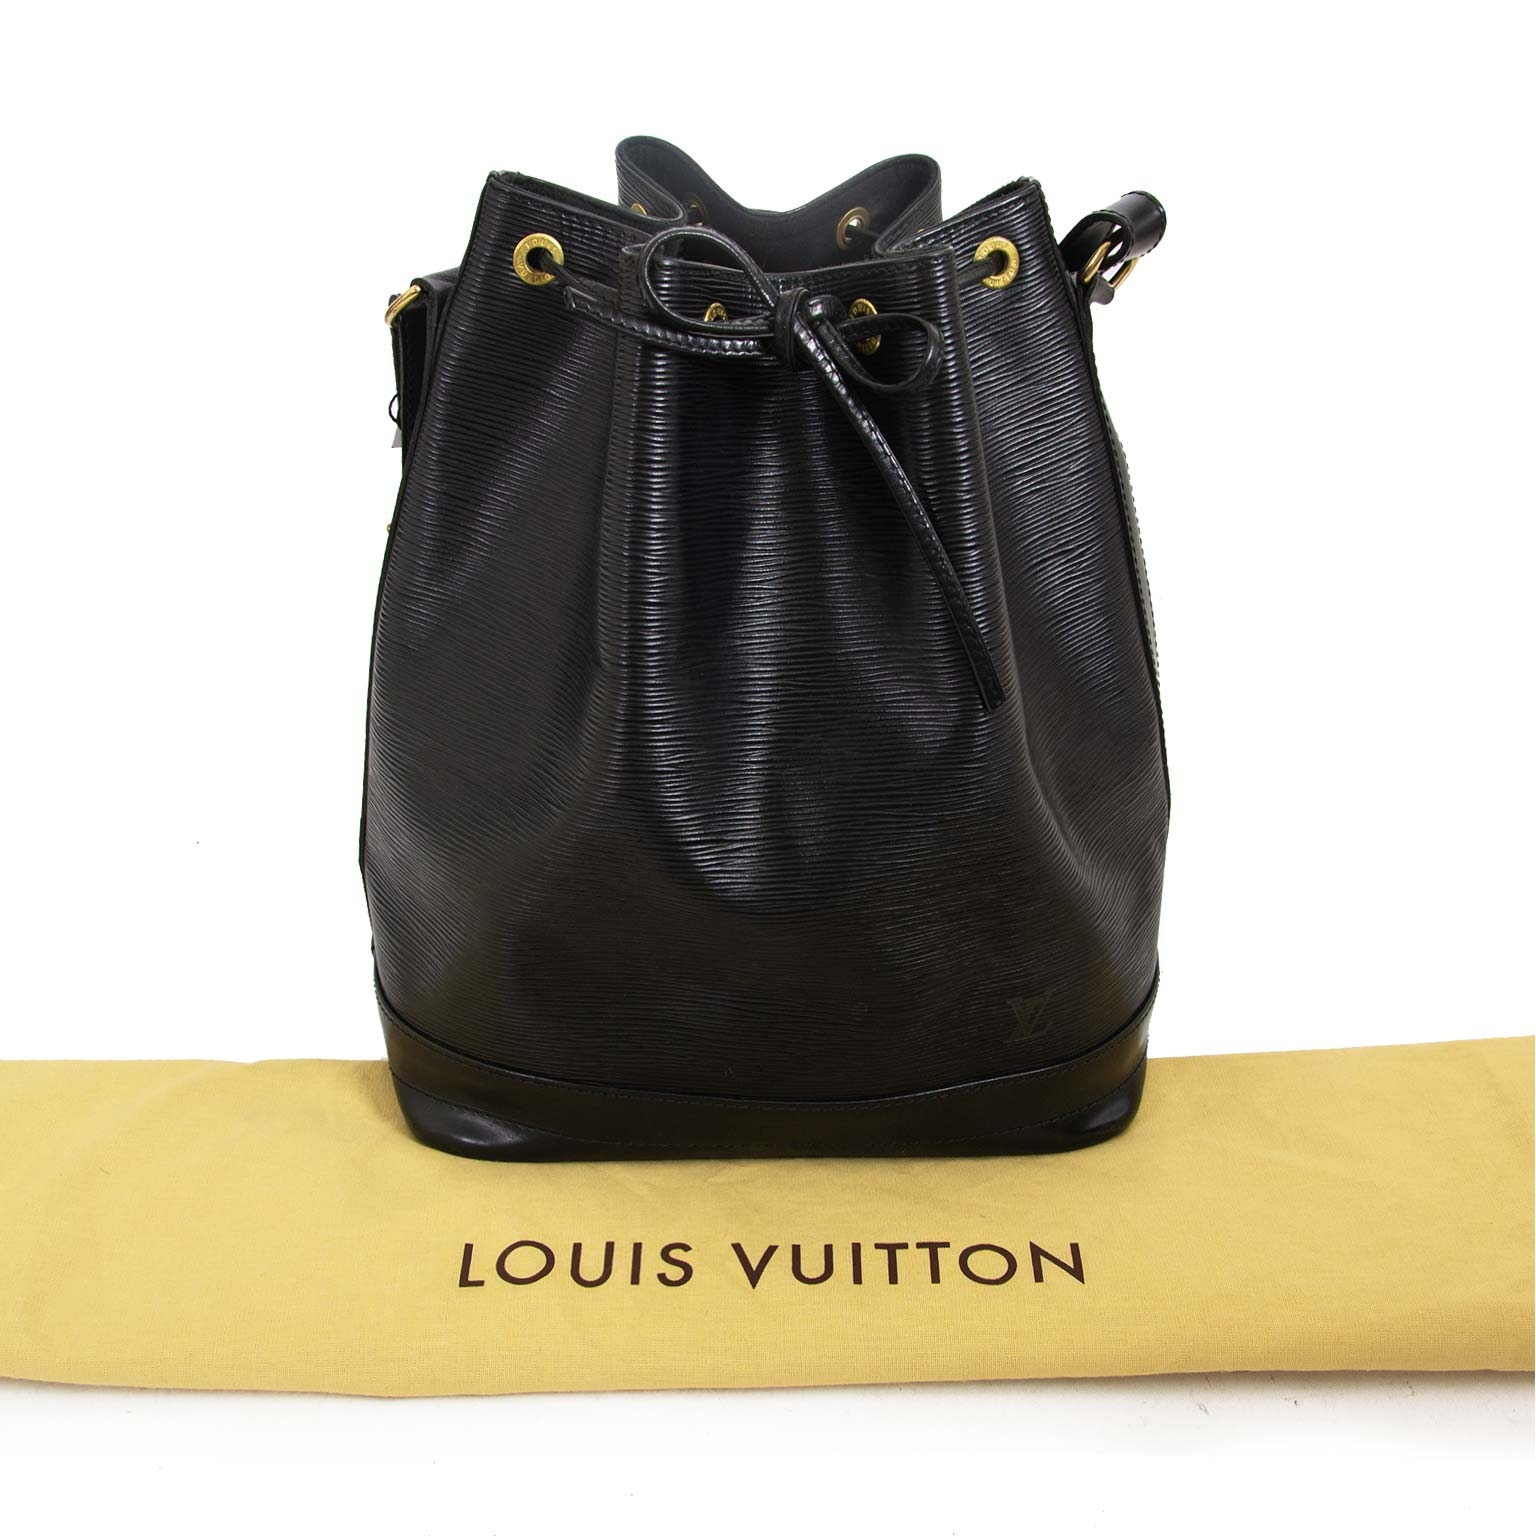 louis vuitton black epi leather noe bag now for sale at labellov vintage fashion webshop belgium